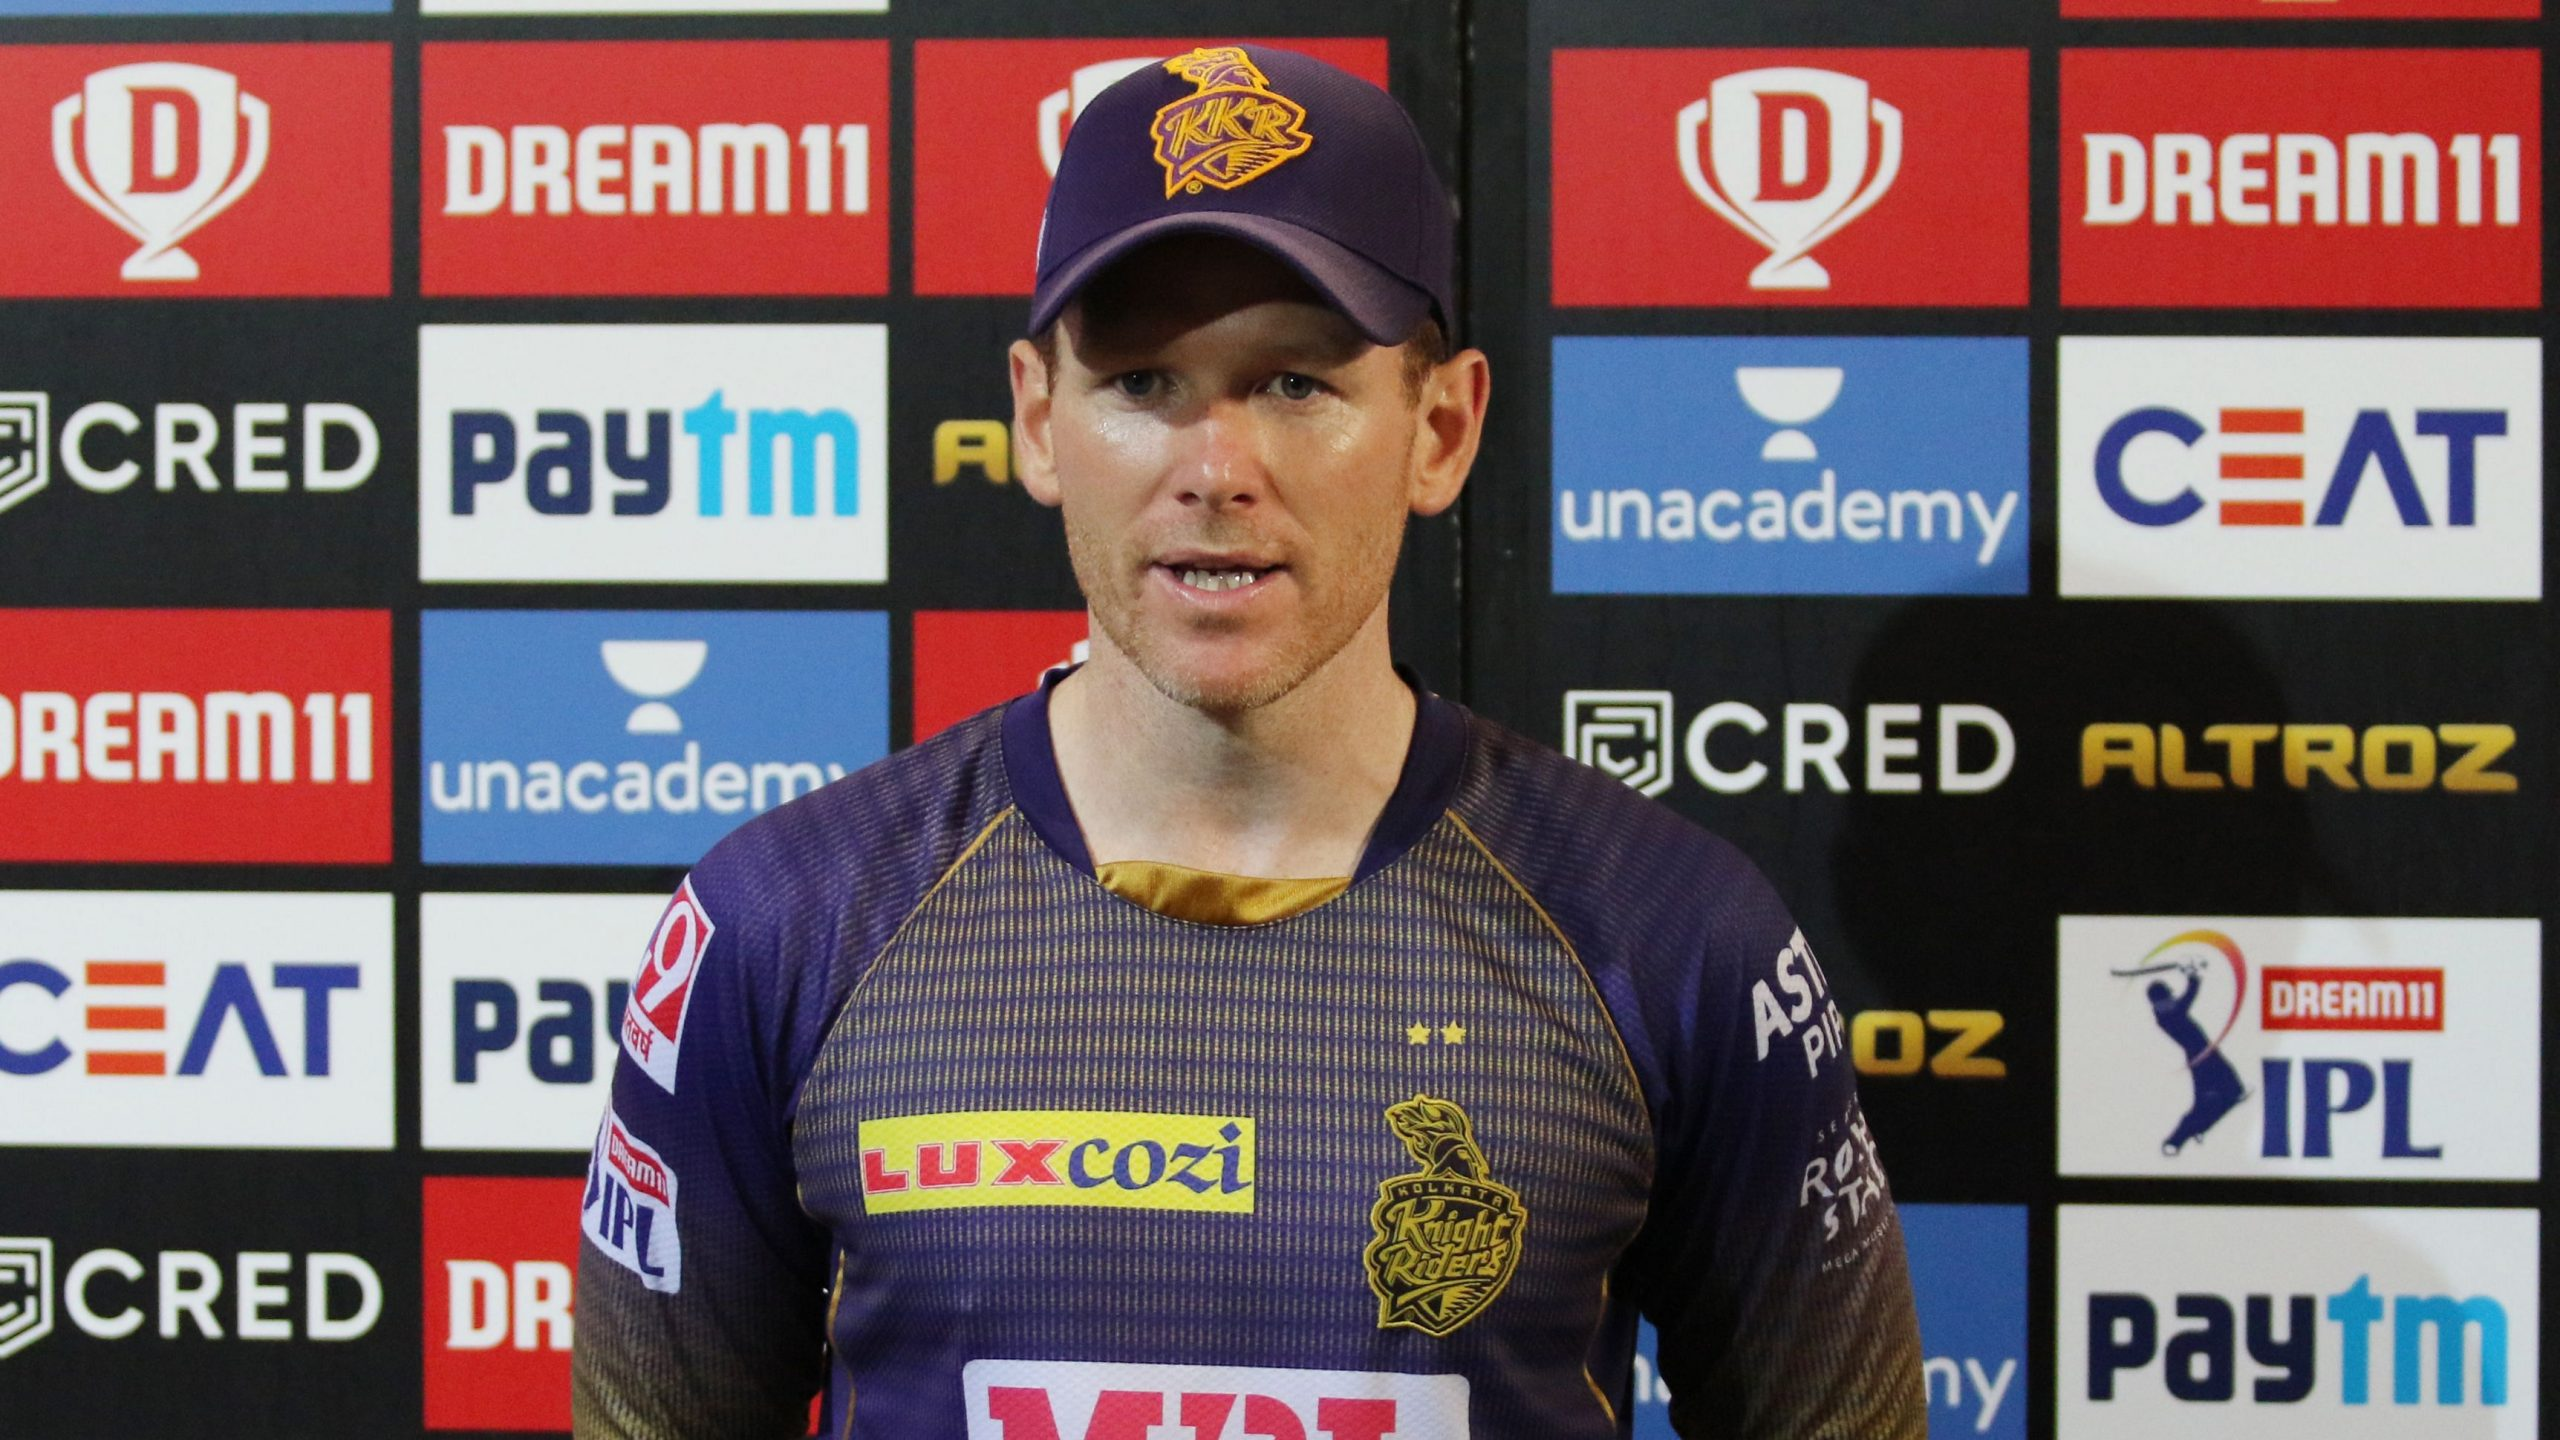 IPL 2021: KKR skipper Eoin Morgan fined Rs 12 Lakh for slow over-rate vs CSK